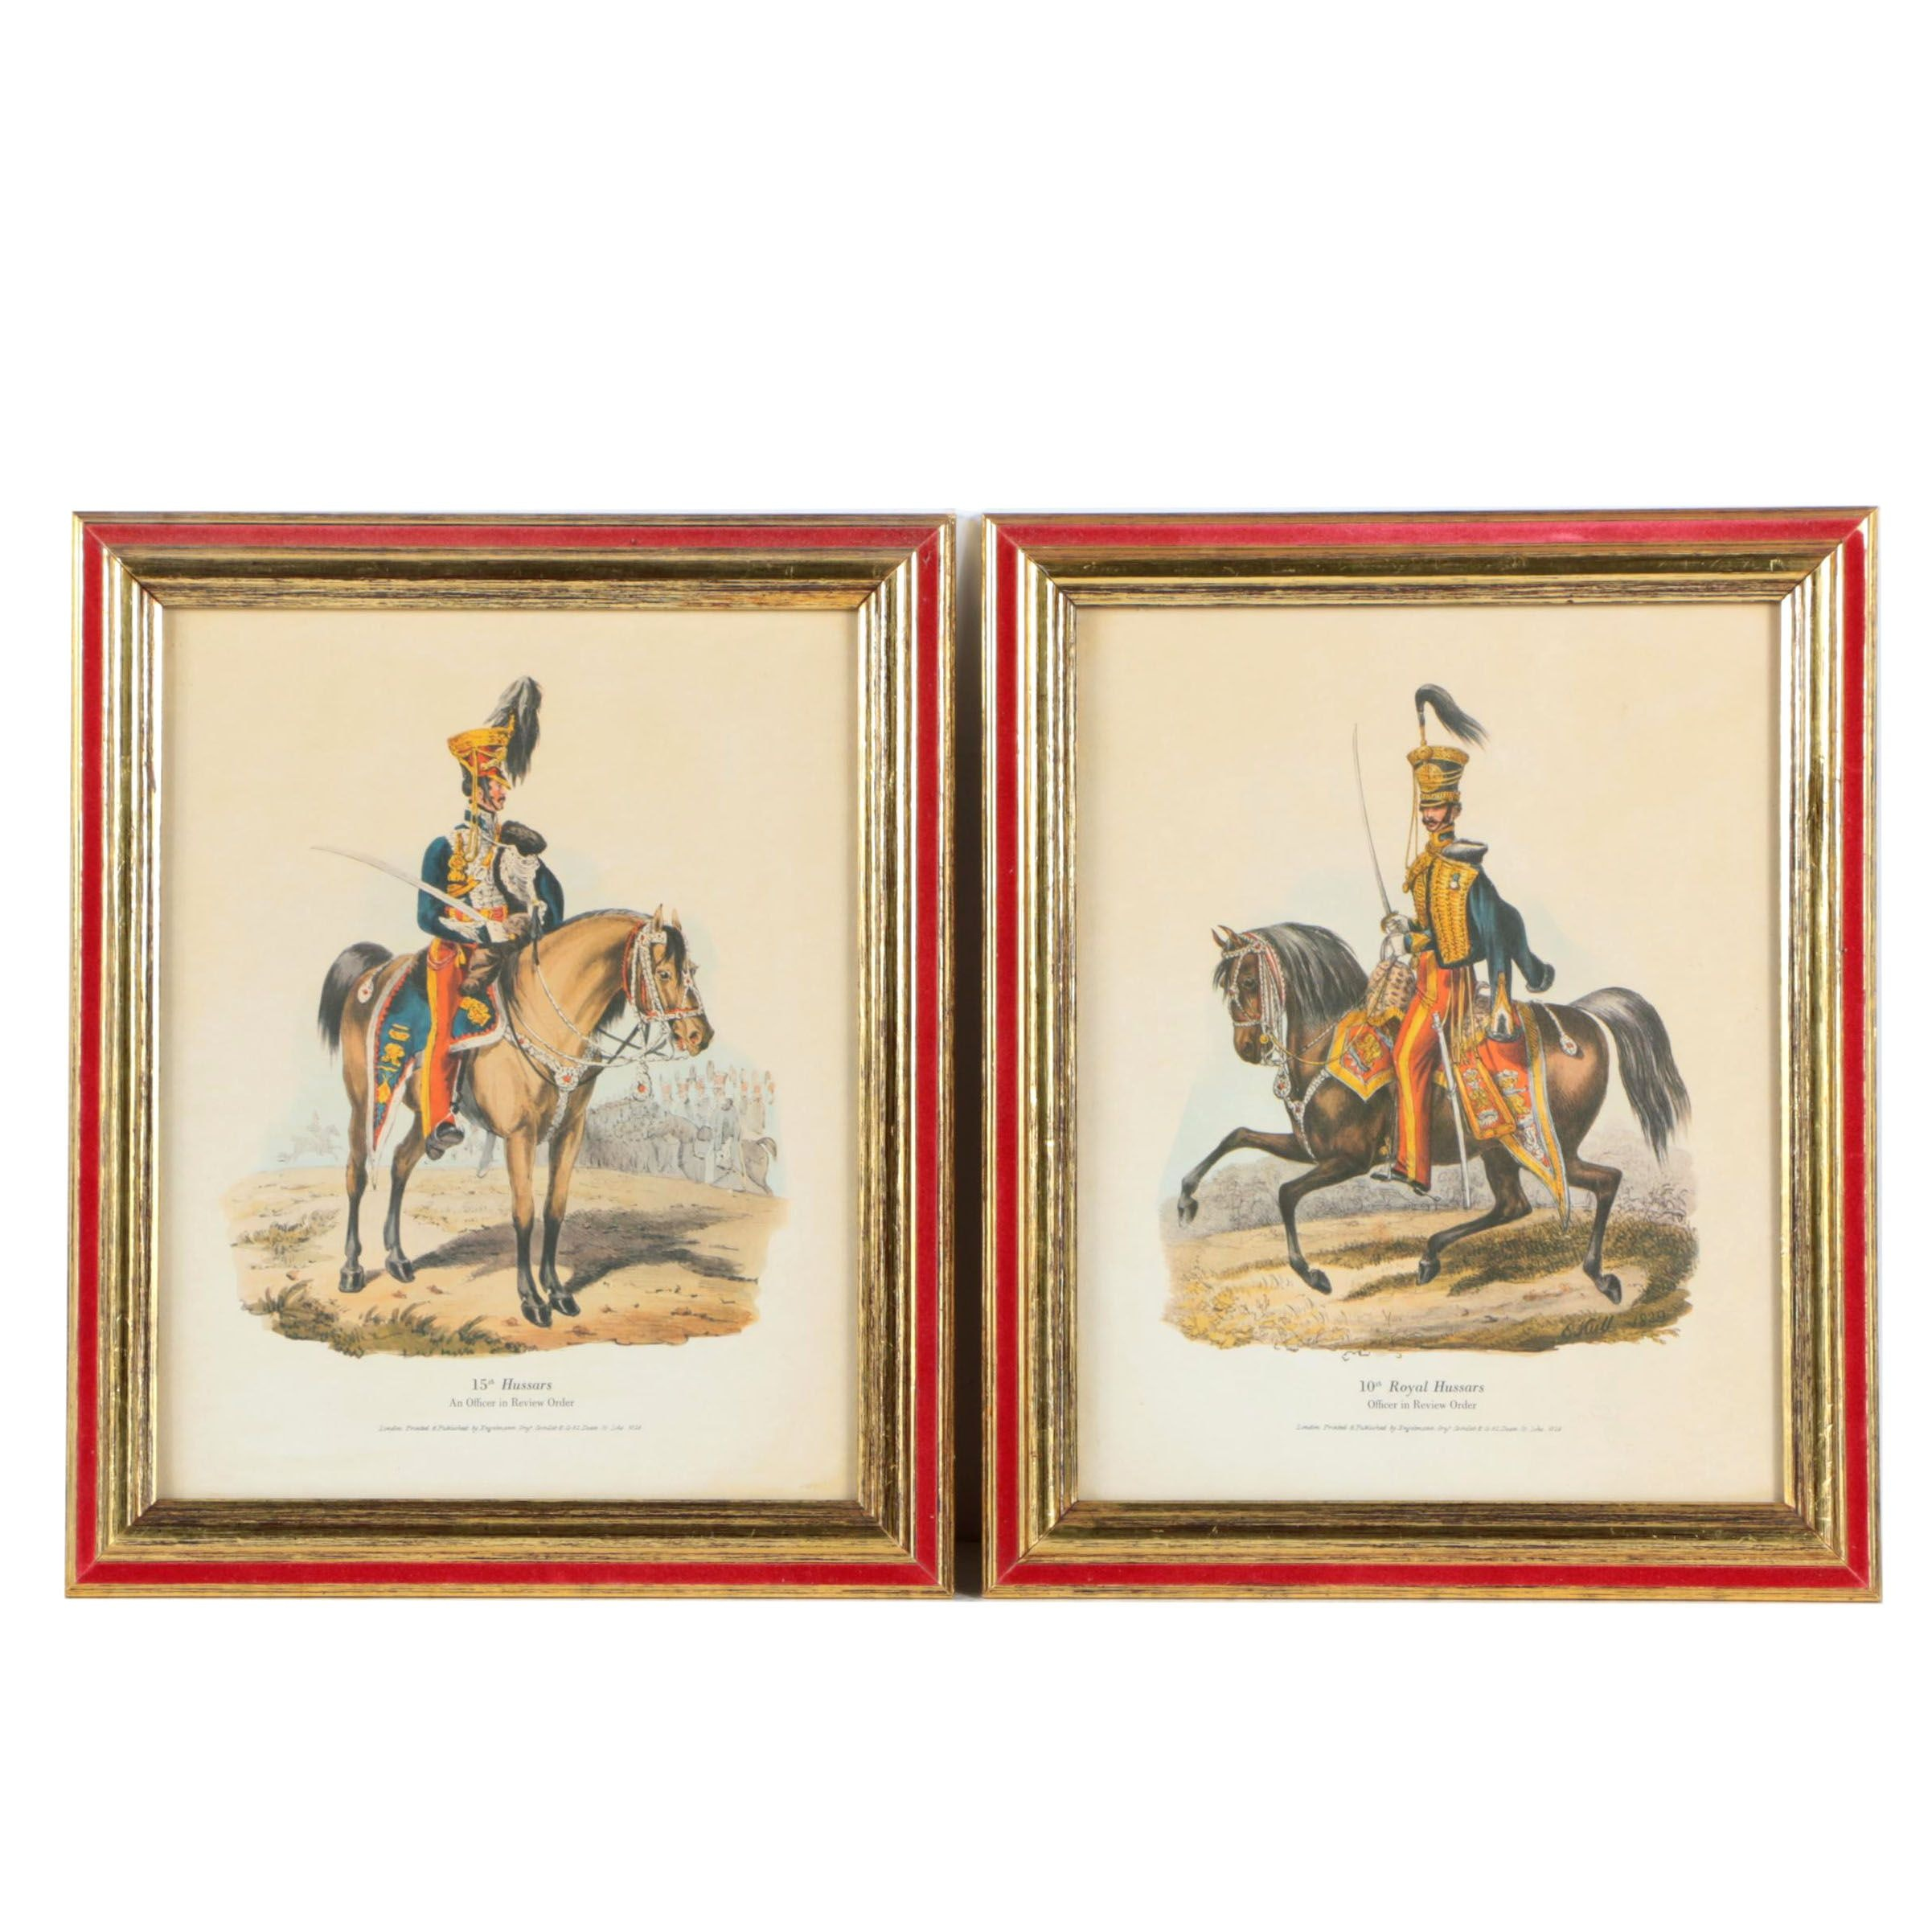 Pair of Offset Lithographs on Paper of British Soldiers